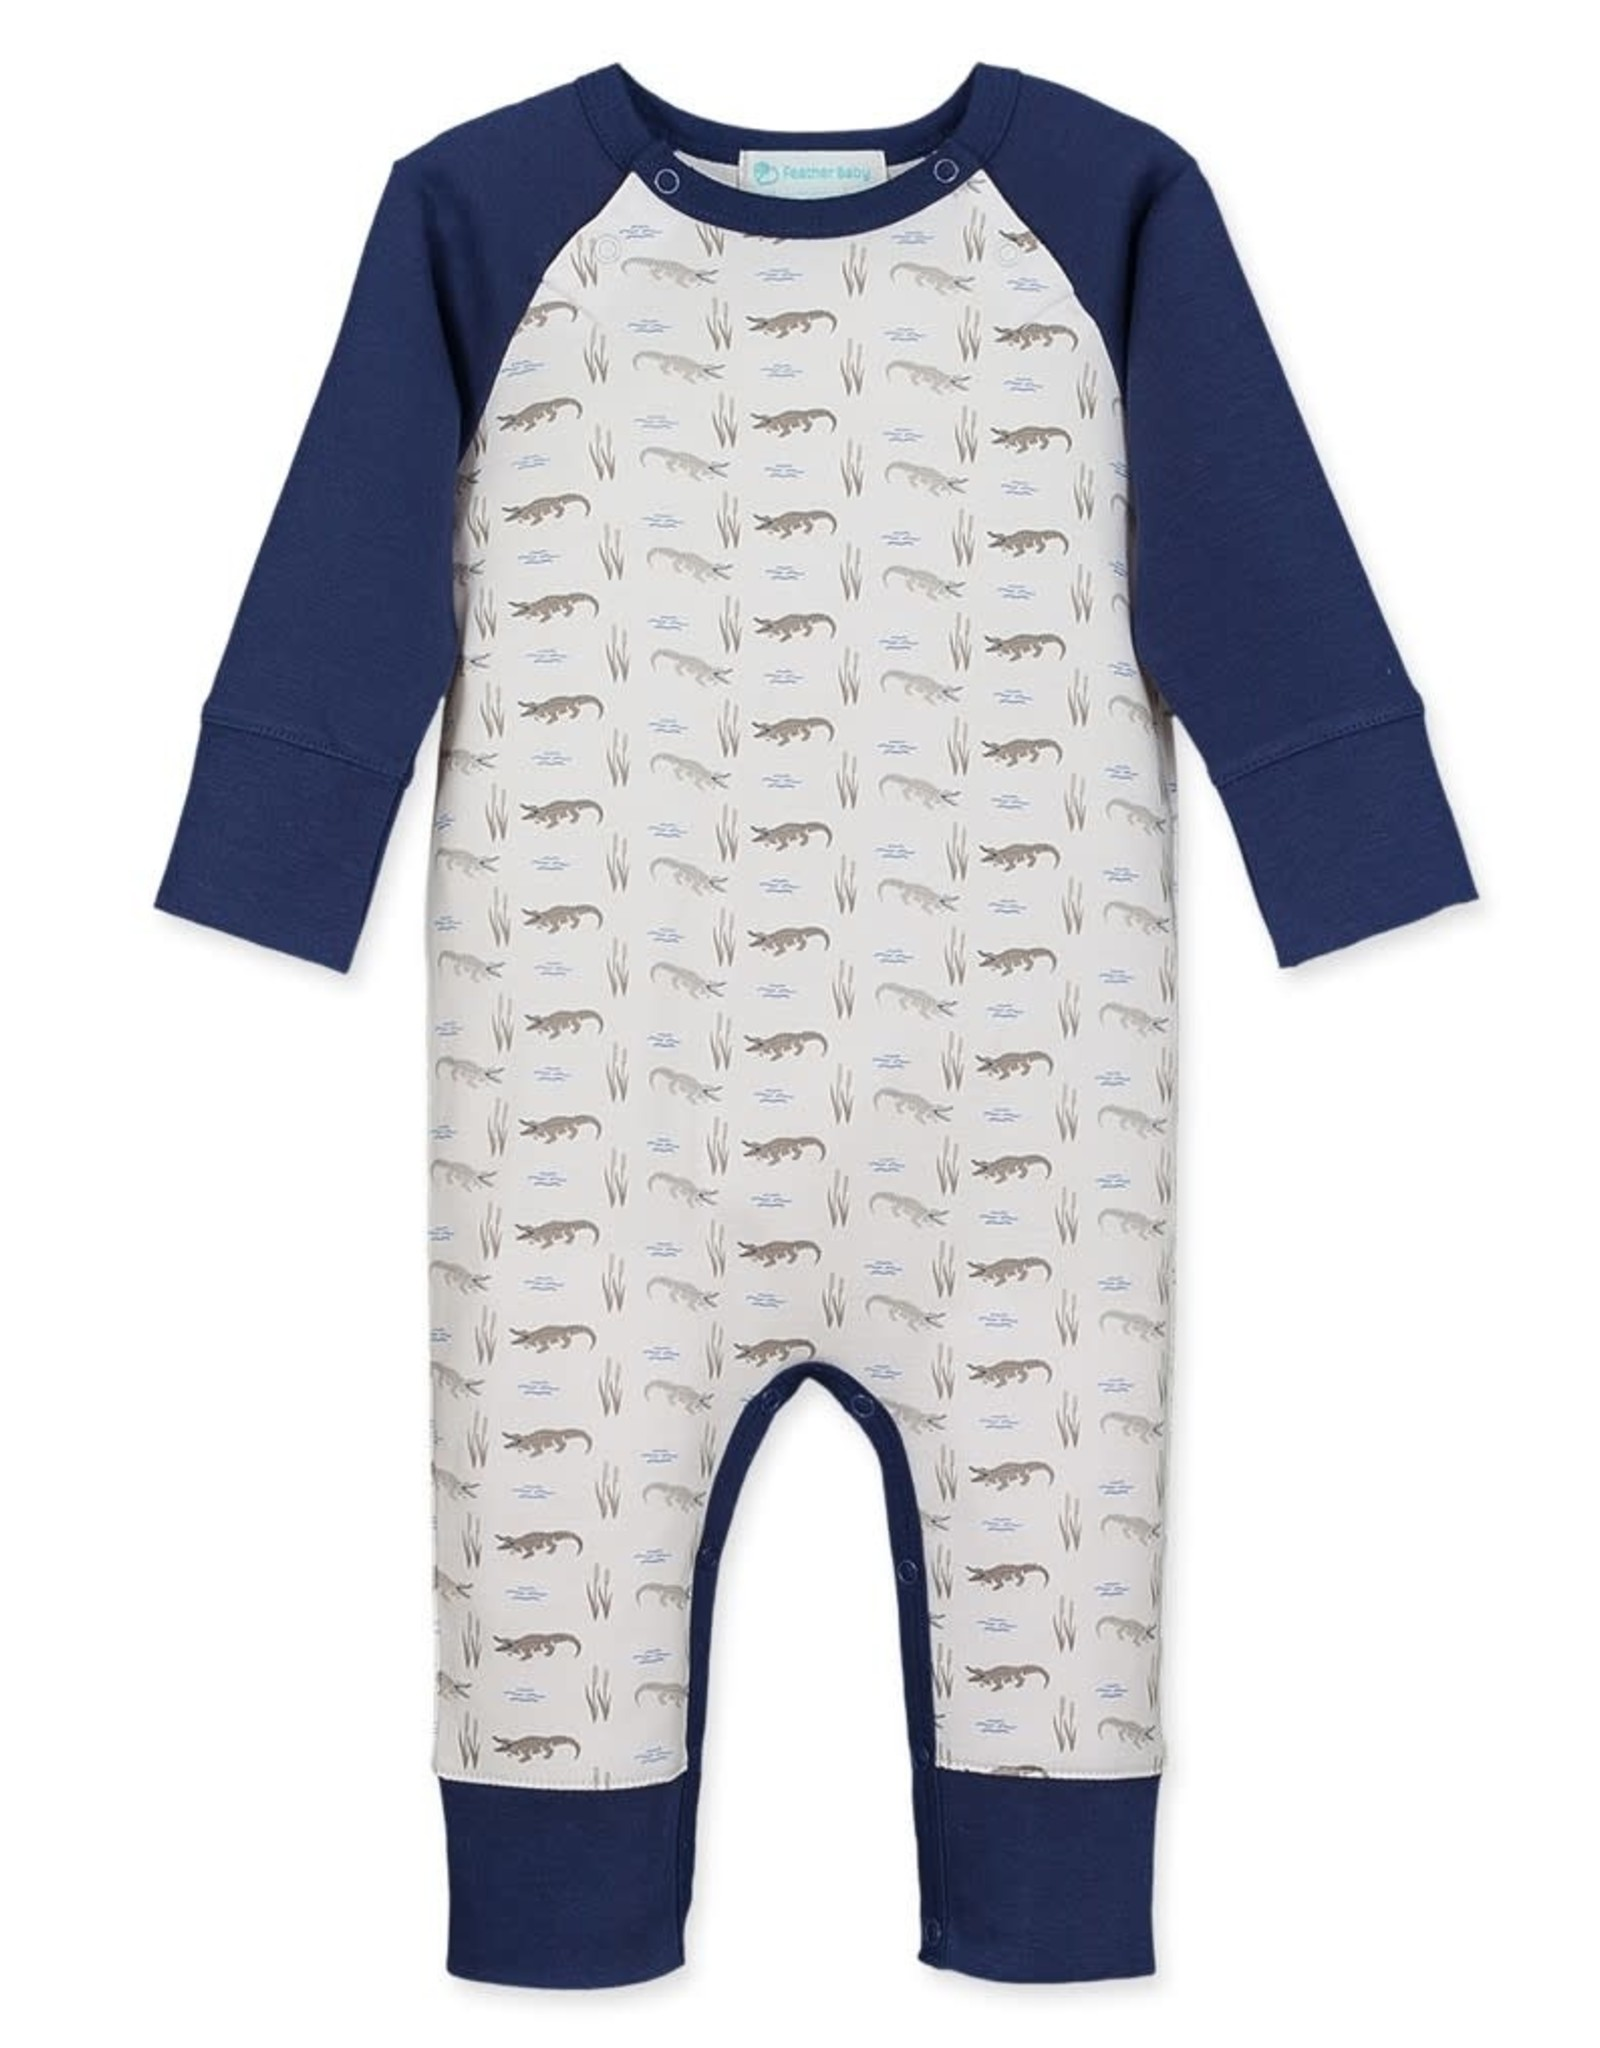 Feather Baby Sailor Sleeve Romper, Alligators on White